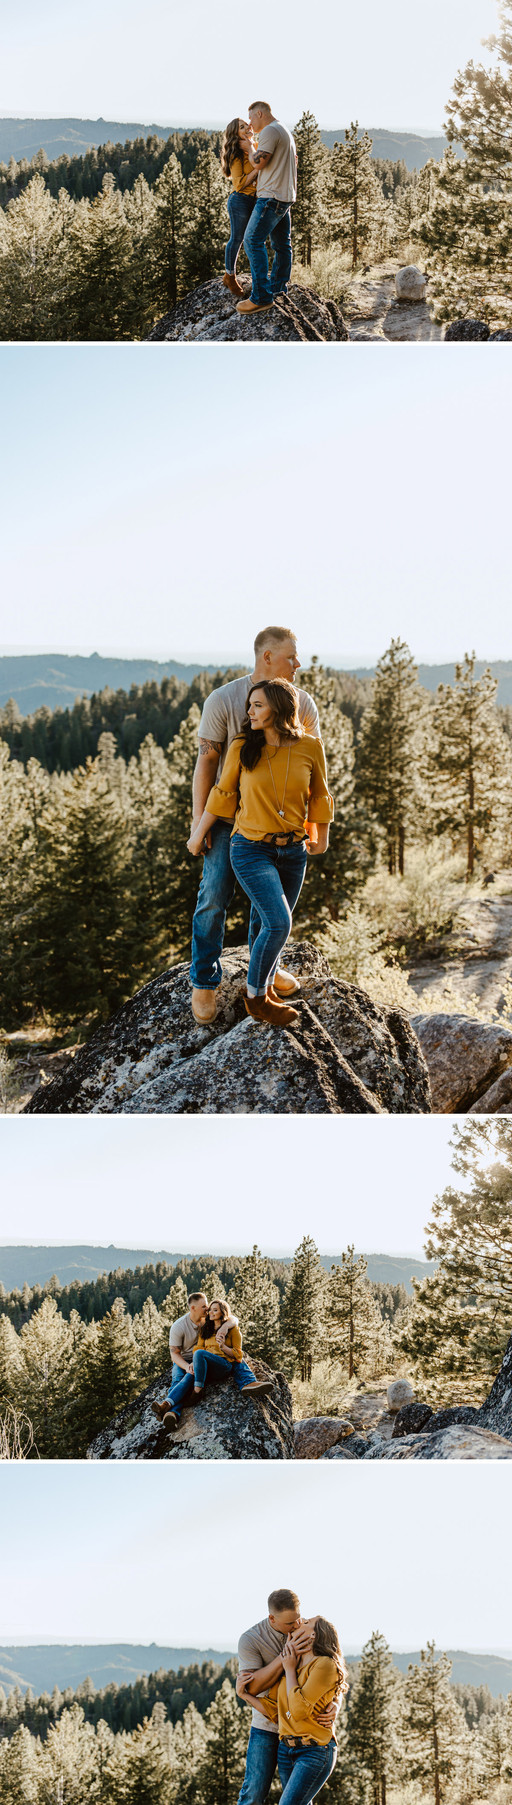 Image collage of Riley Thomas and Rylee Driscoll standing and kissing on a rock with pine tress in the background. Image taken on Bogus Basin, in Boise, Idaho.